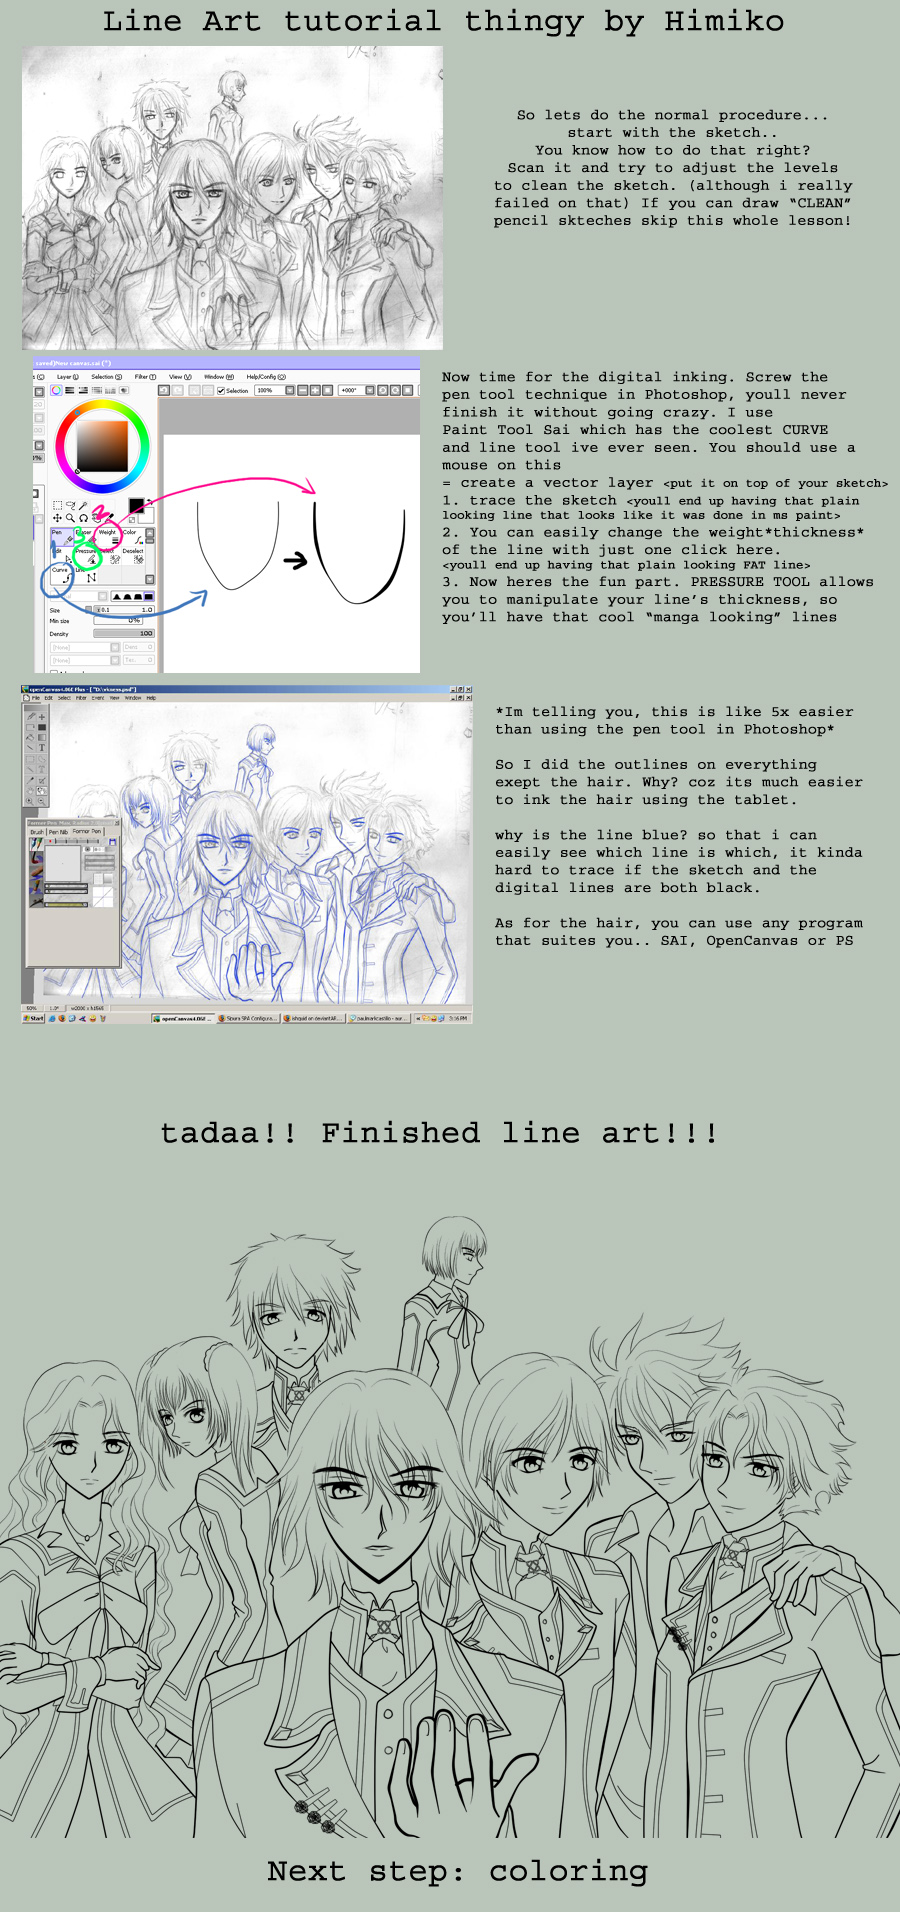 Lineart In Sai : Line art tutorial in sai by himiko on deviantart